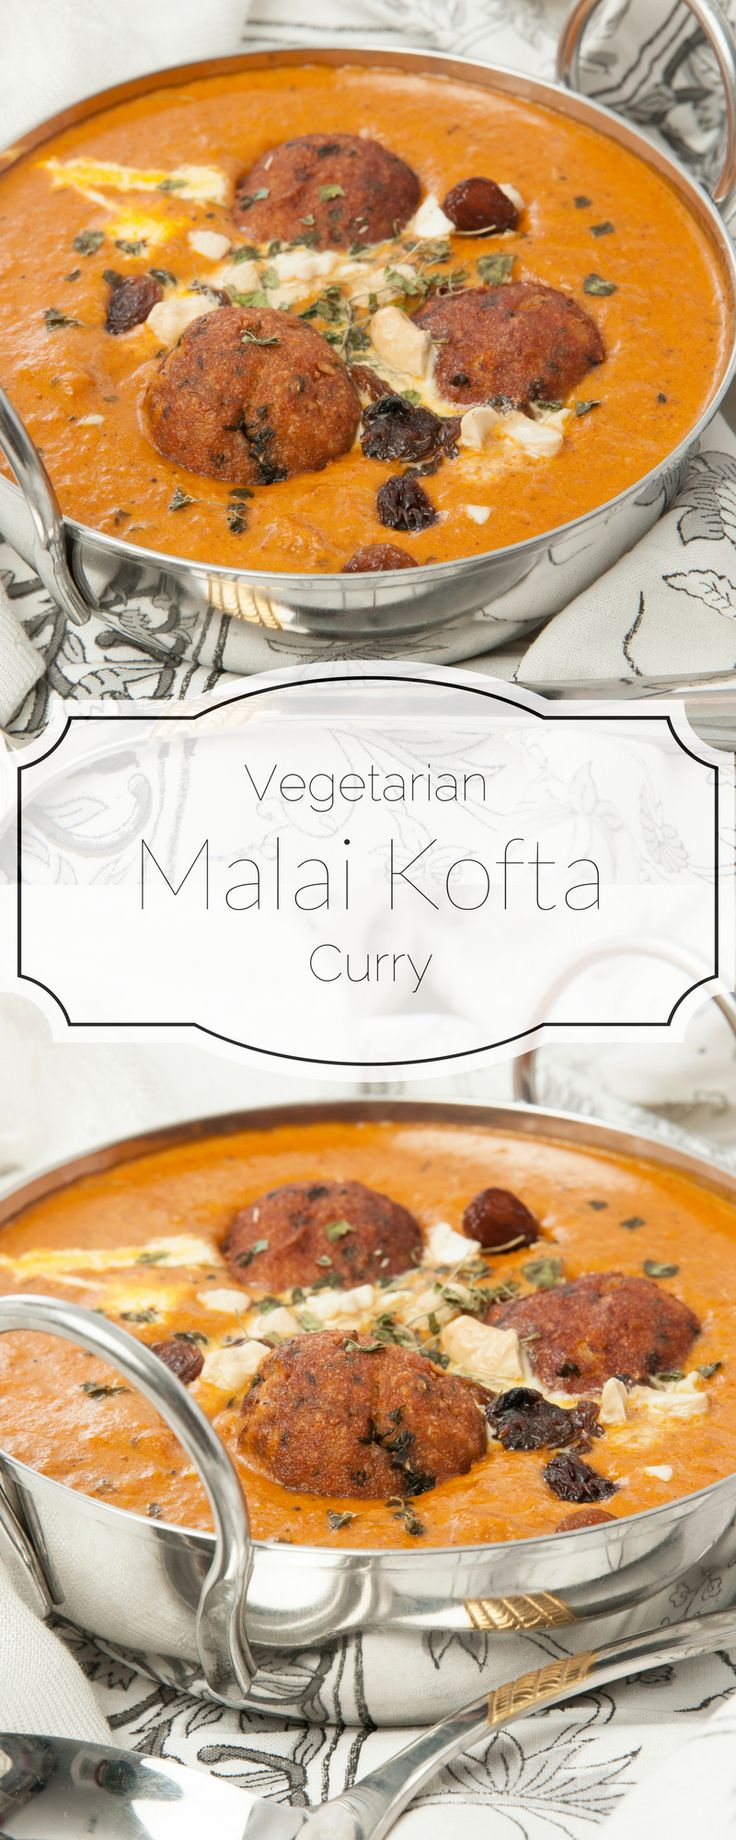 Malai Kofta - Vegetarian Potato & Paneer Balls in a cream, rich tomato curry! Restaurant quality Indian recipe. Thermomix instructions, vegetarian Indian recipe. #thermomix #indian